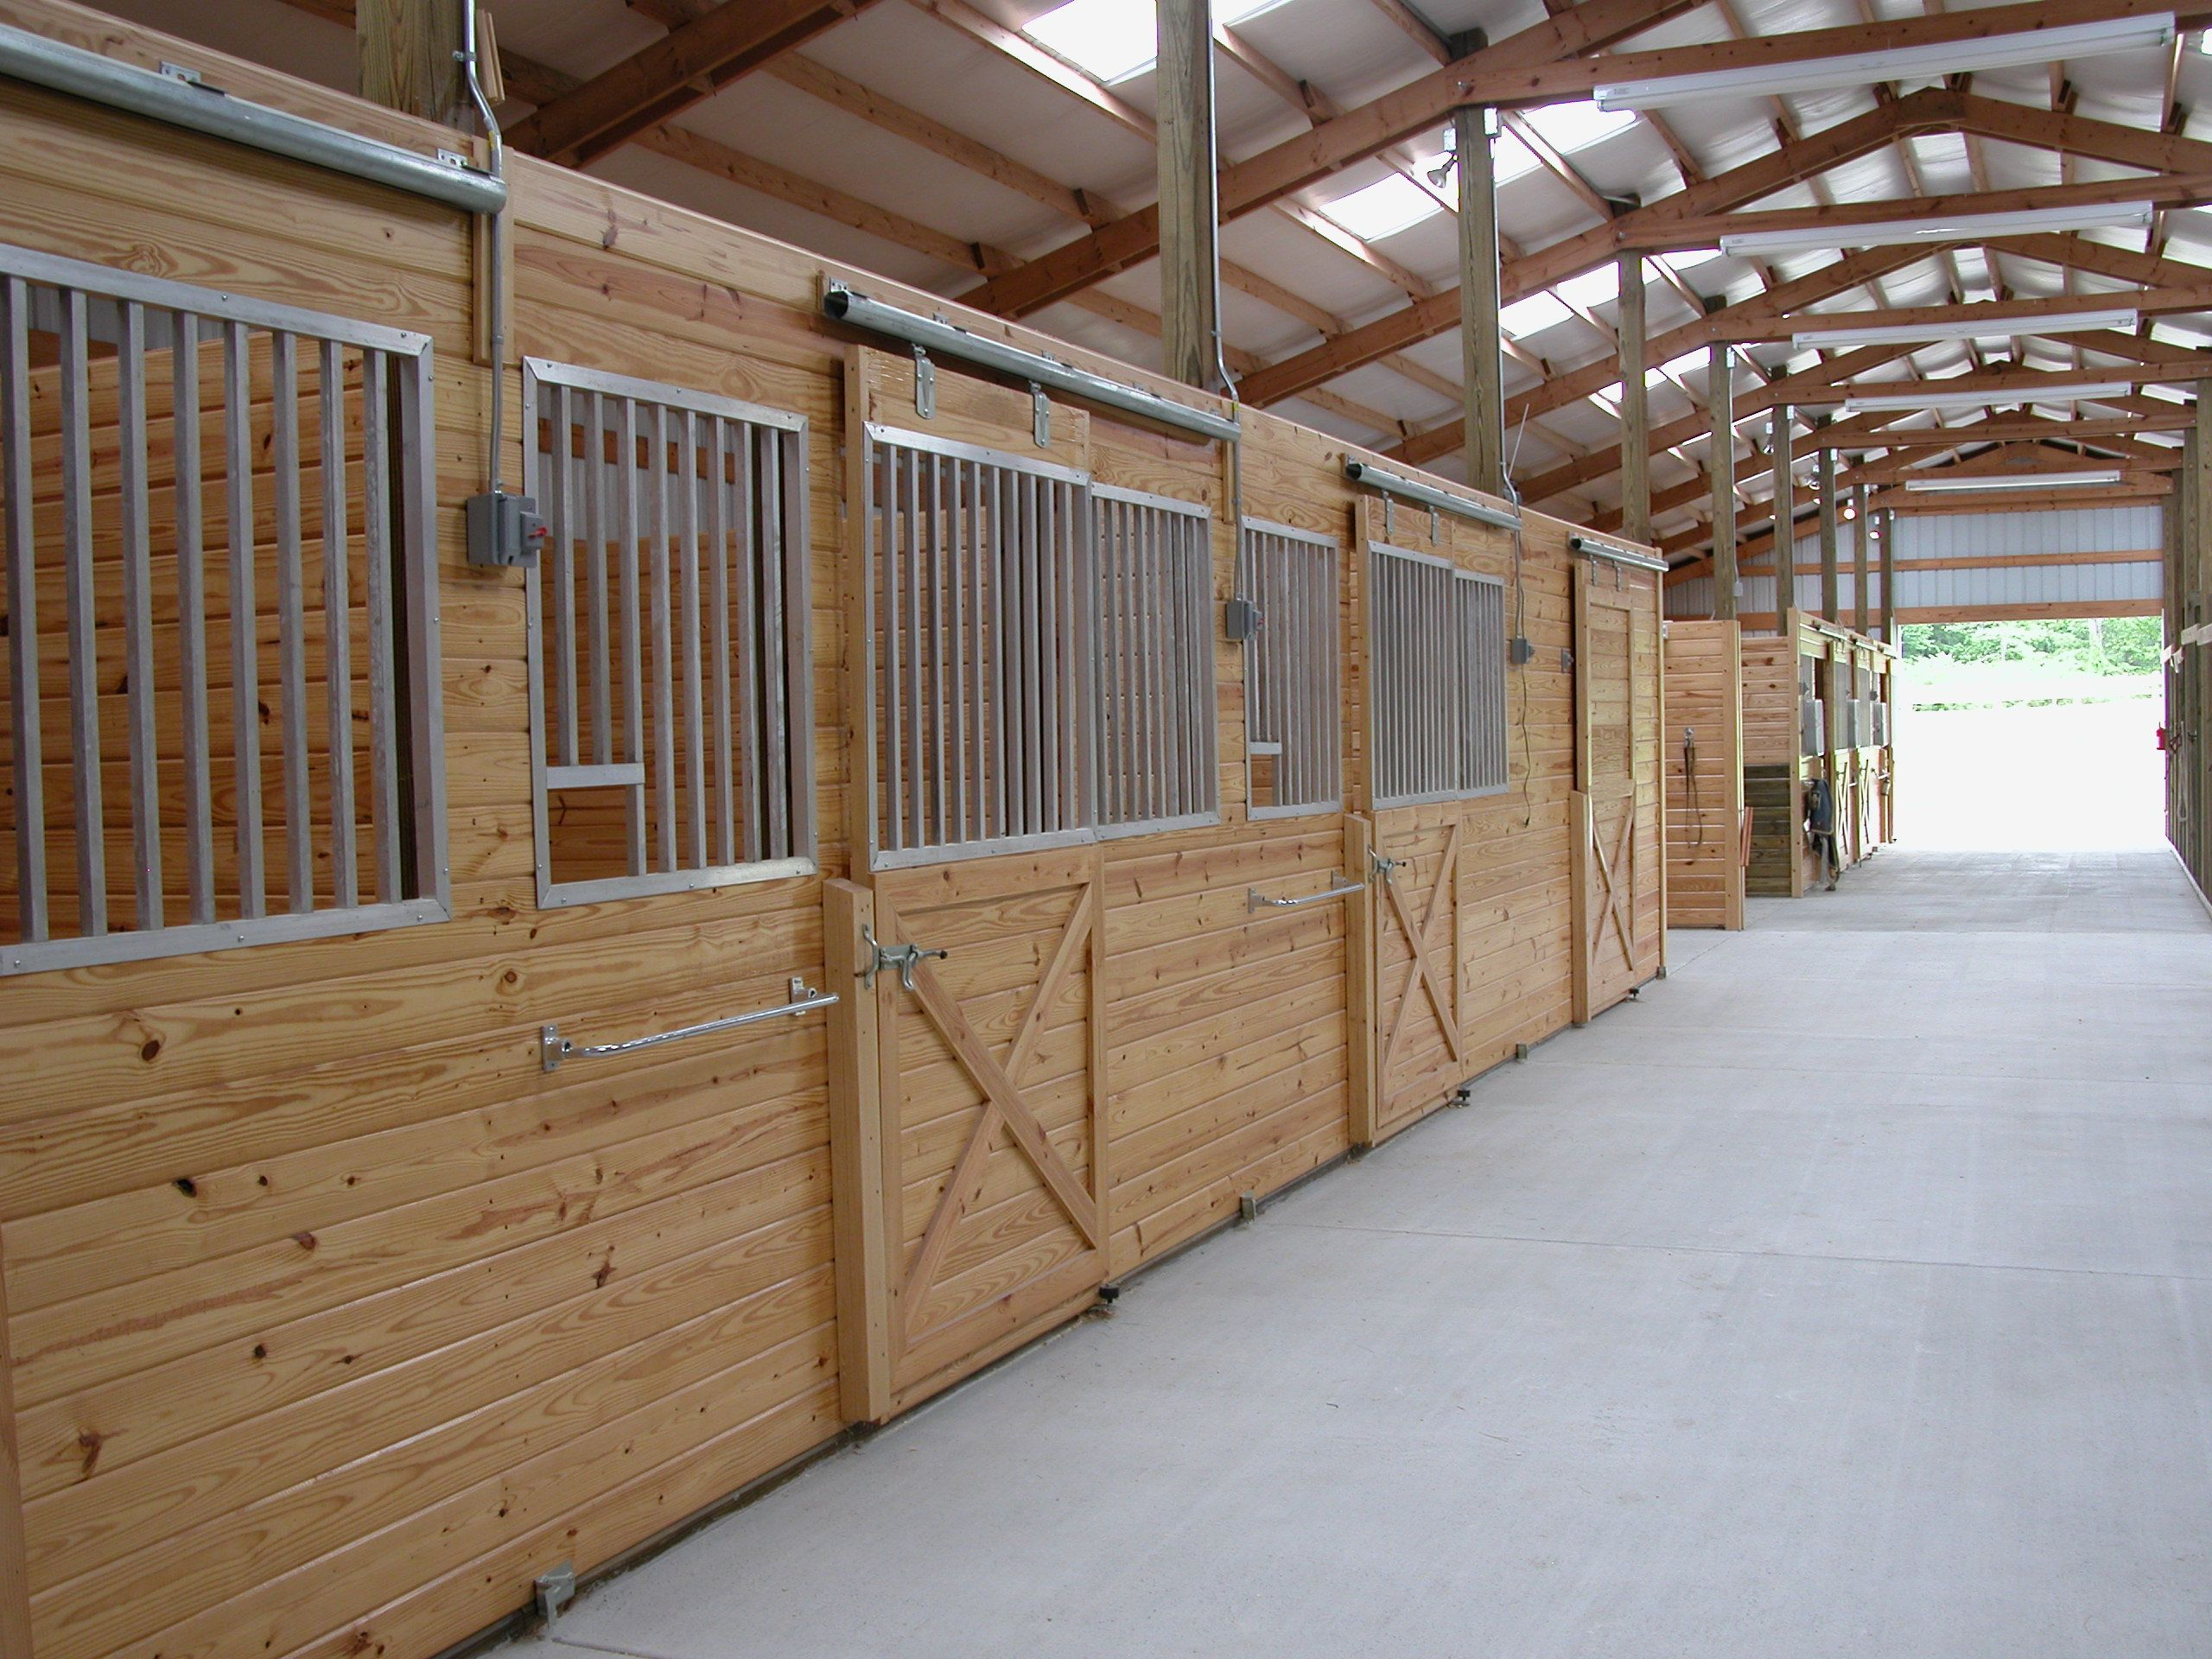 2x6 T Horse Stall Grade Pine Lumber Both Sides Graded So They